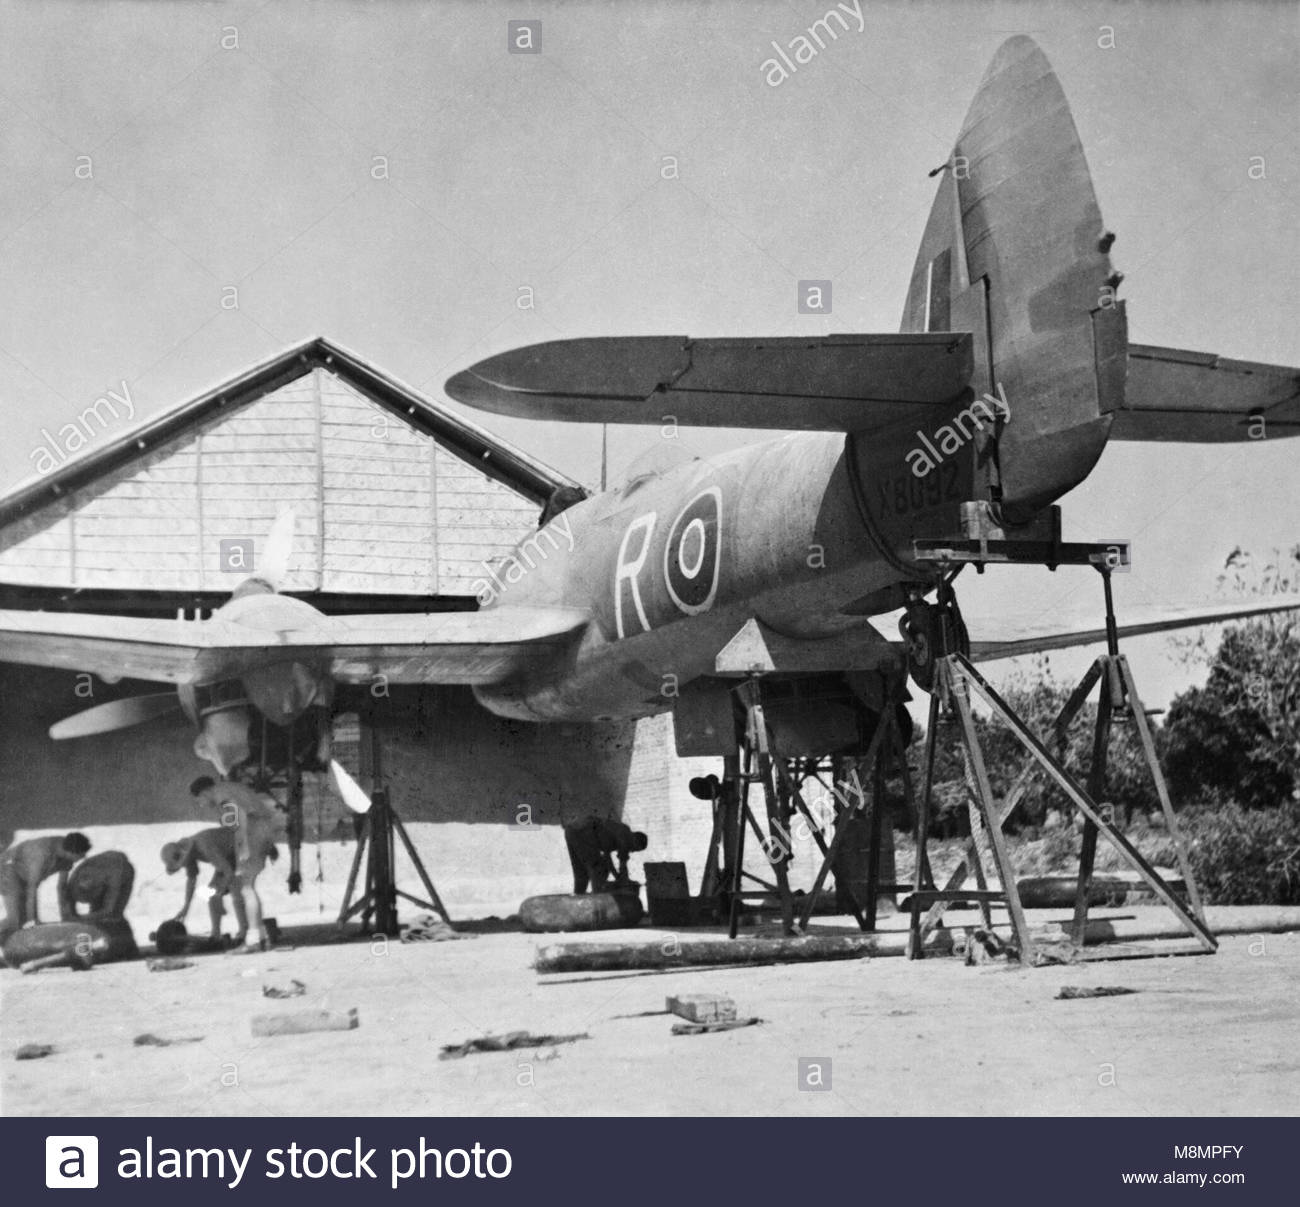 Royal Air Force Operations in the Far East, 1941-1945. Bristol Beaufighter Mark VIF, X8092 'R', of No. 27 - Stock Image